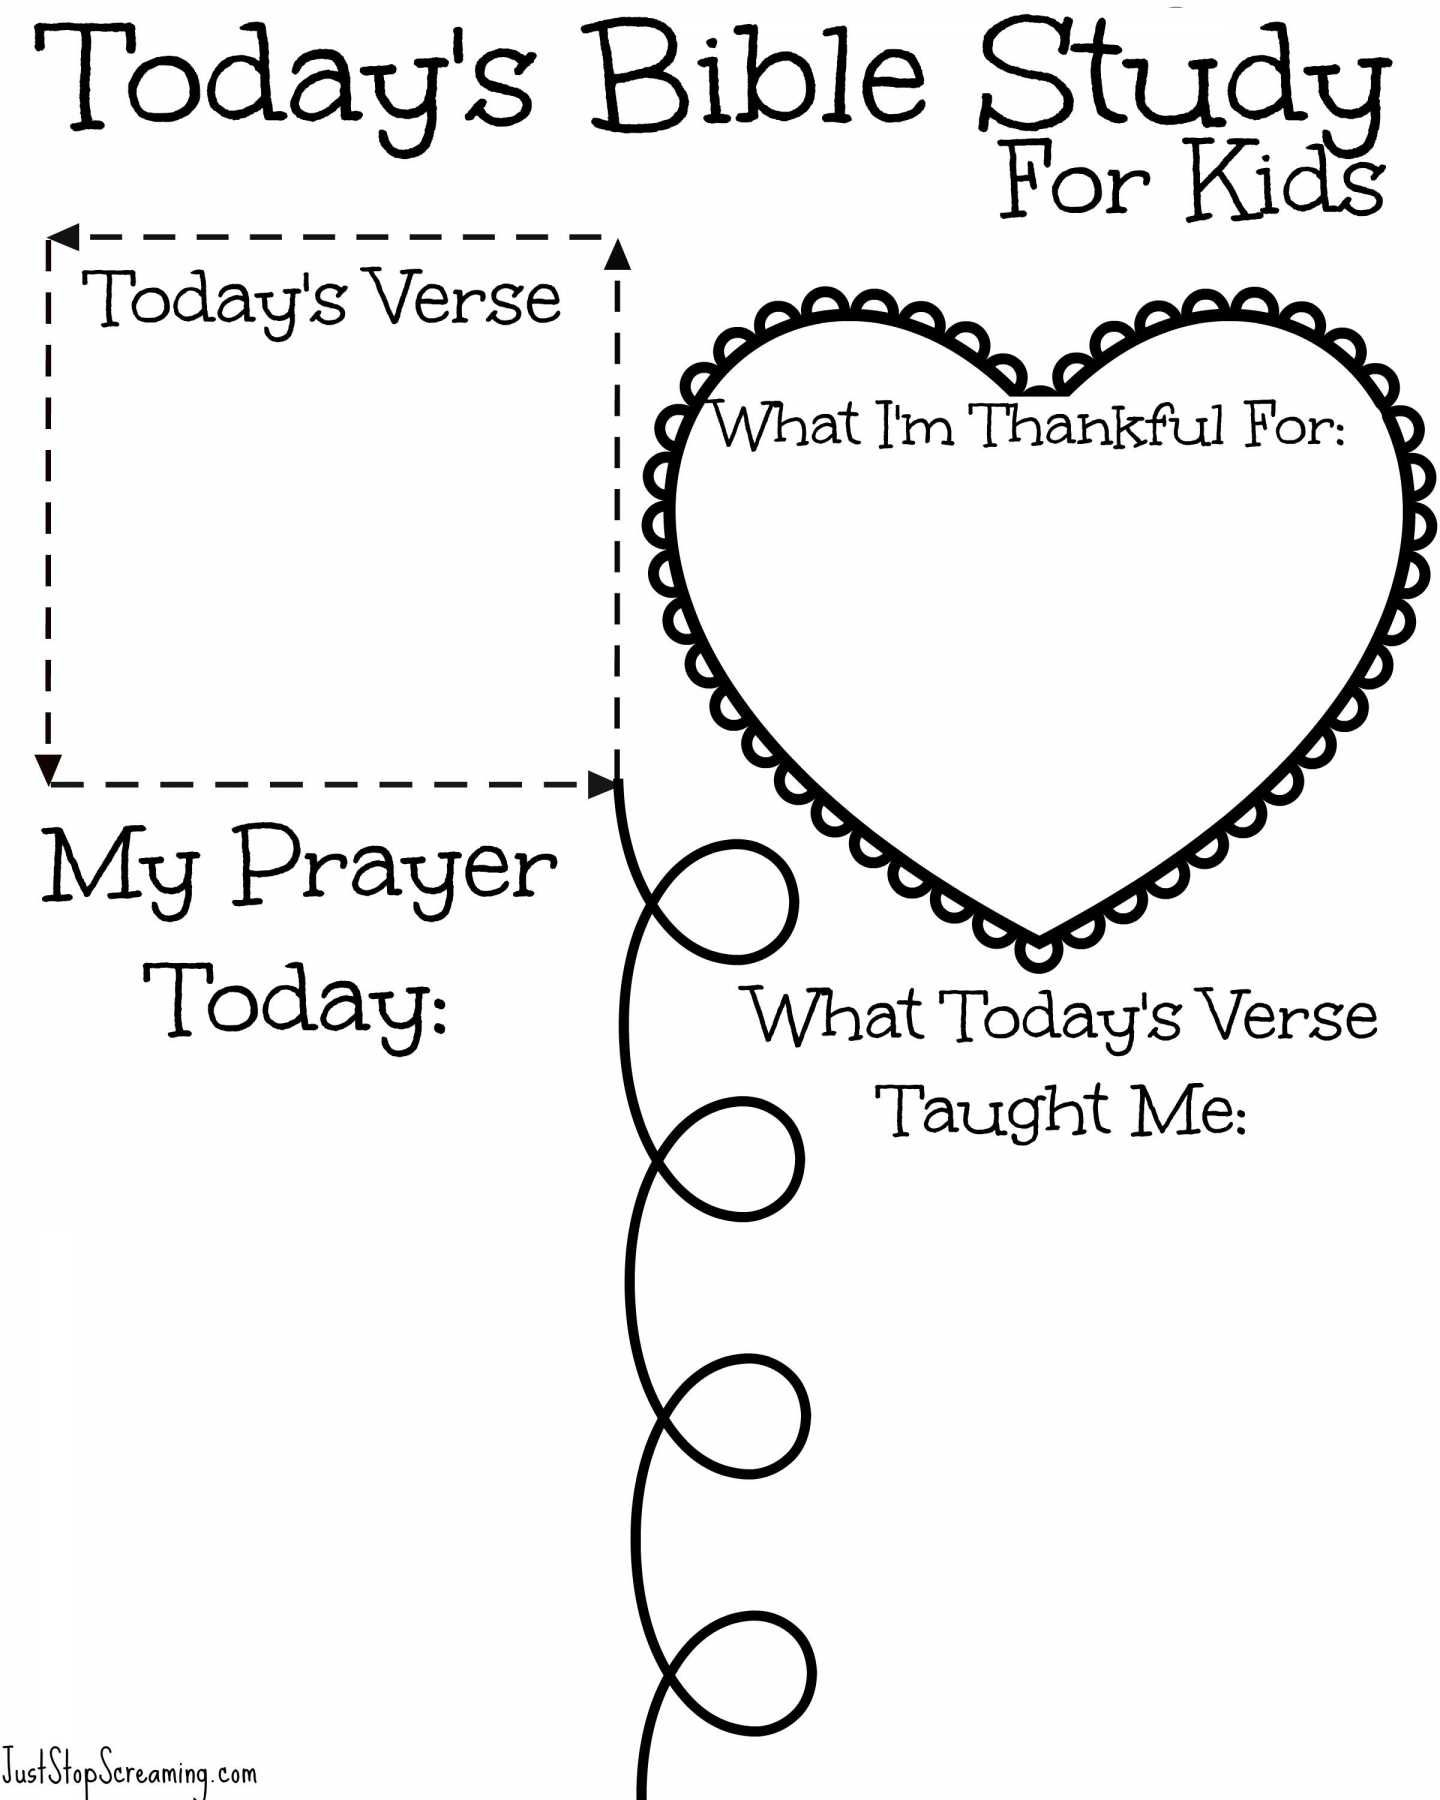 Kids Bible Study Worksheets Free Bible Study Printable For